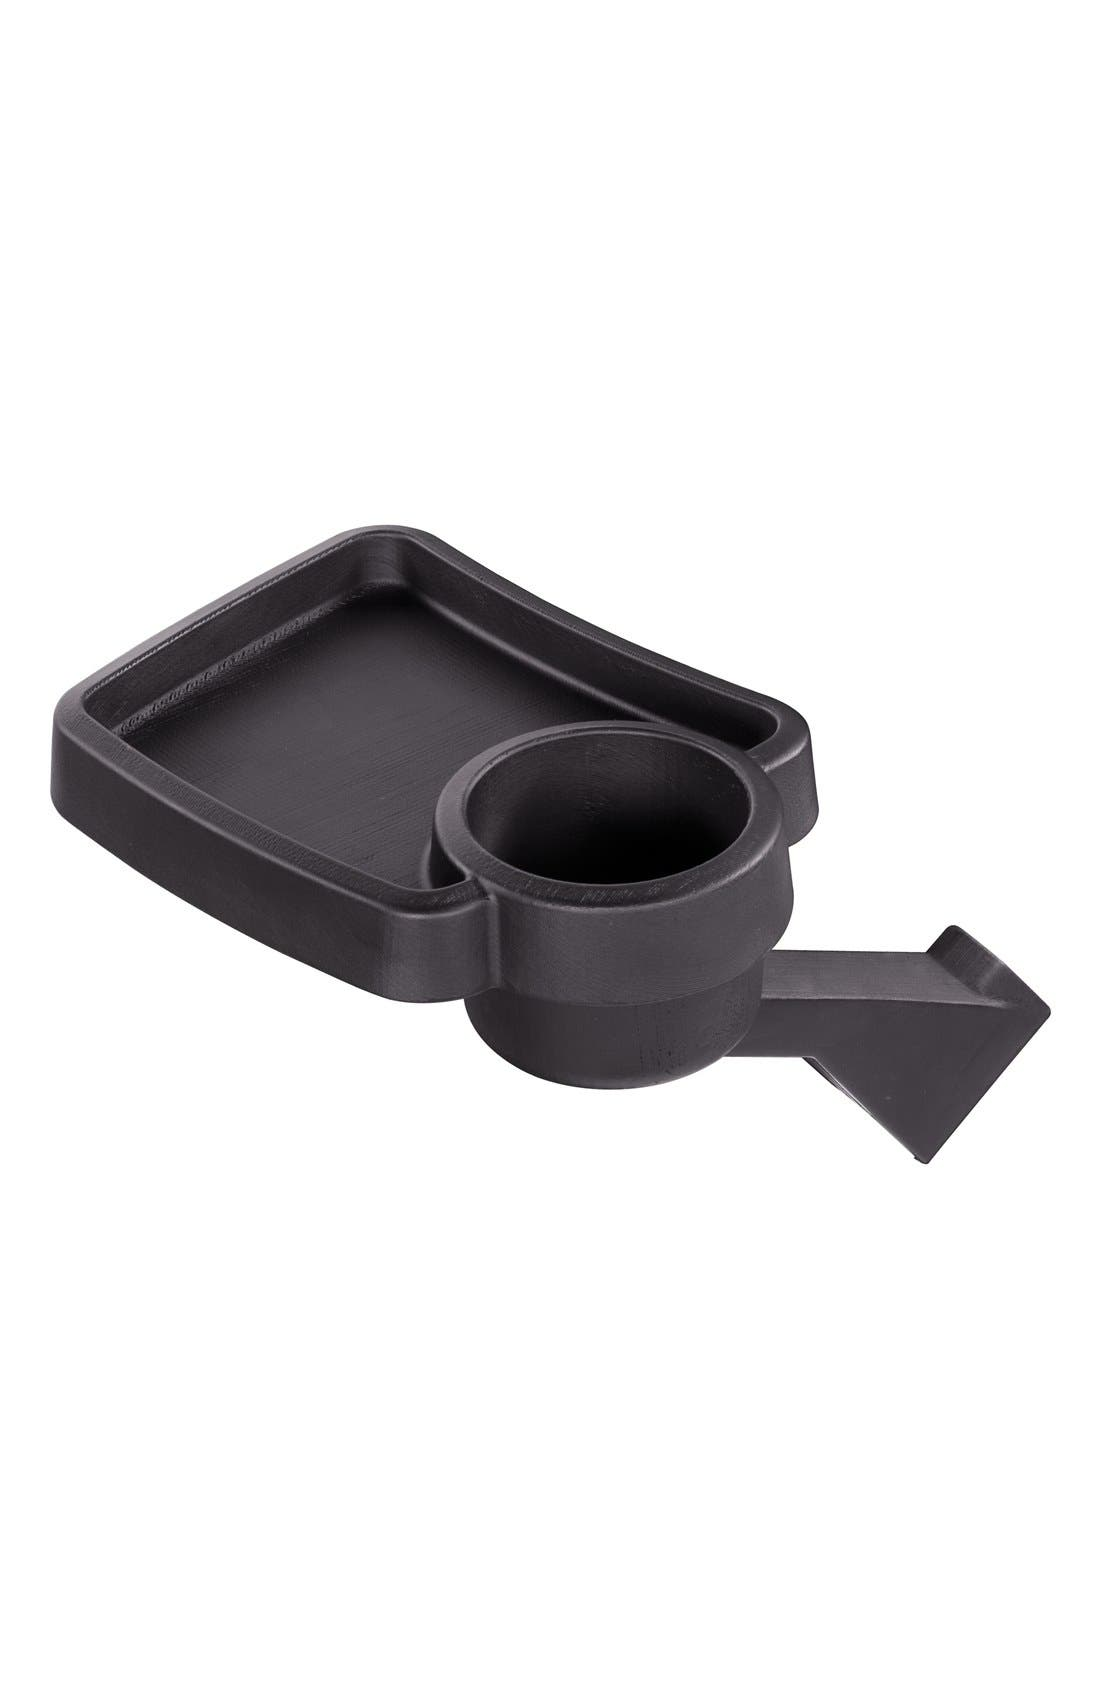 Alternate Image 1 Selected - Thule Snack Tray